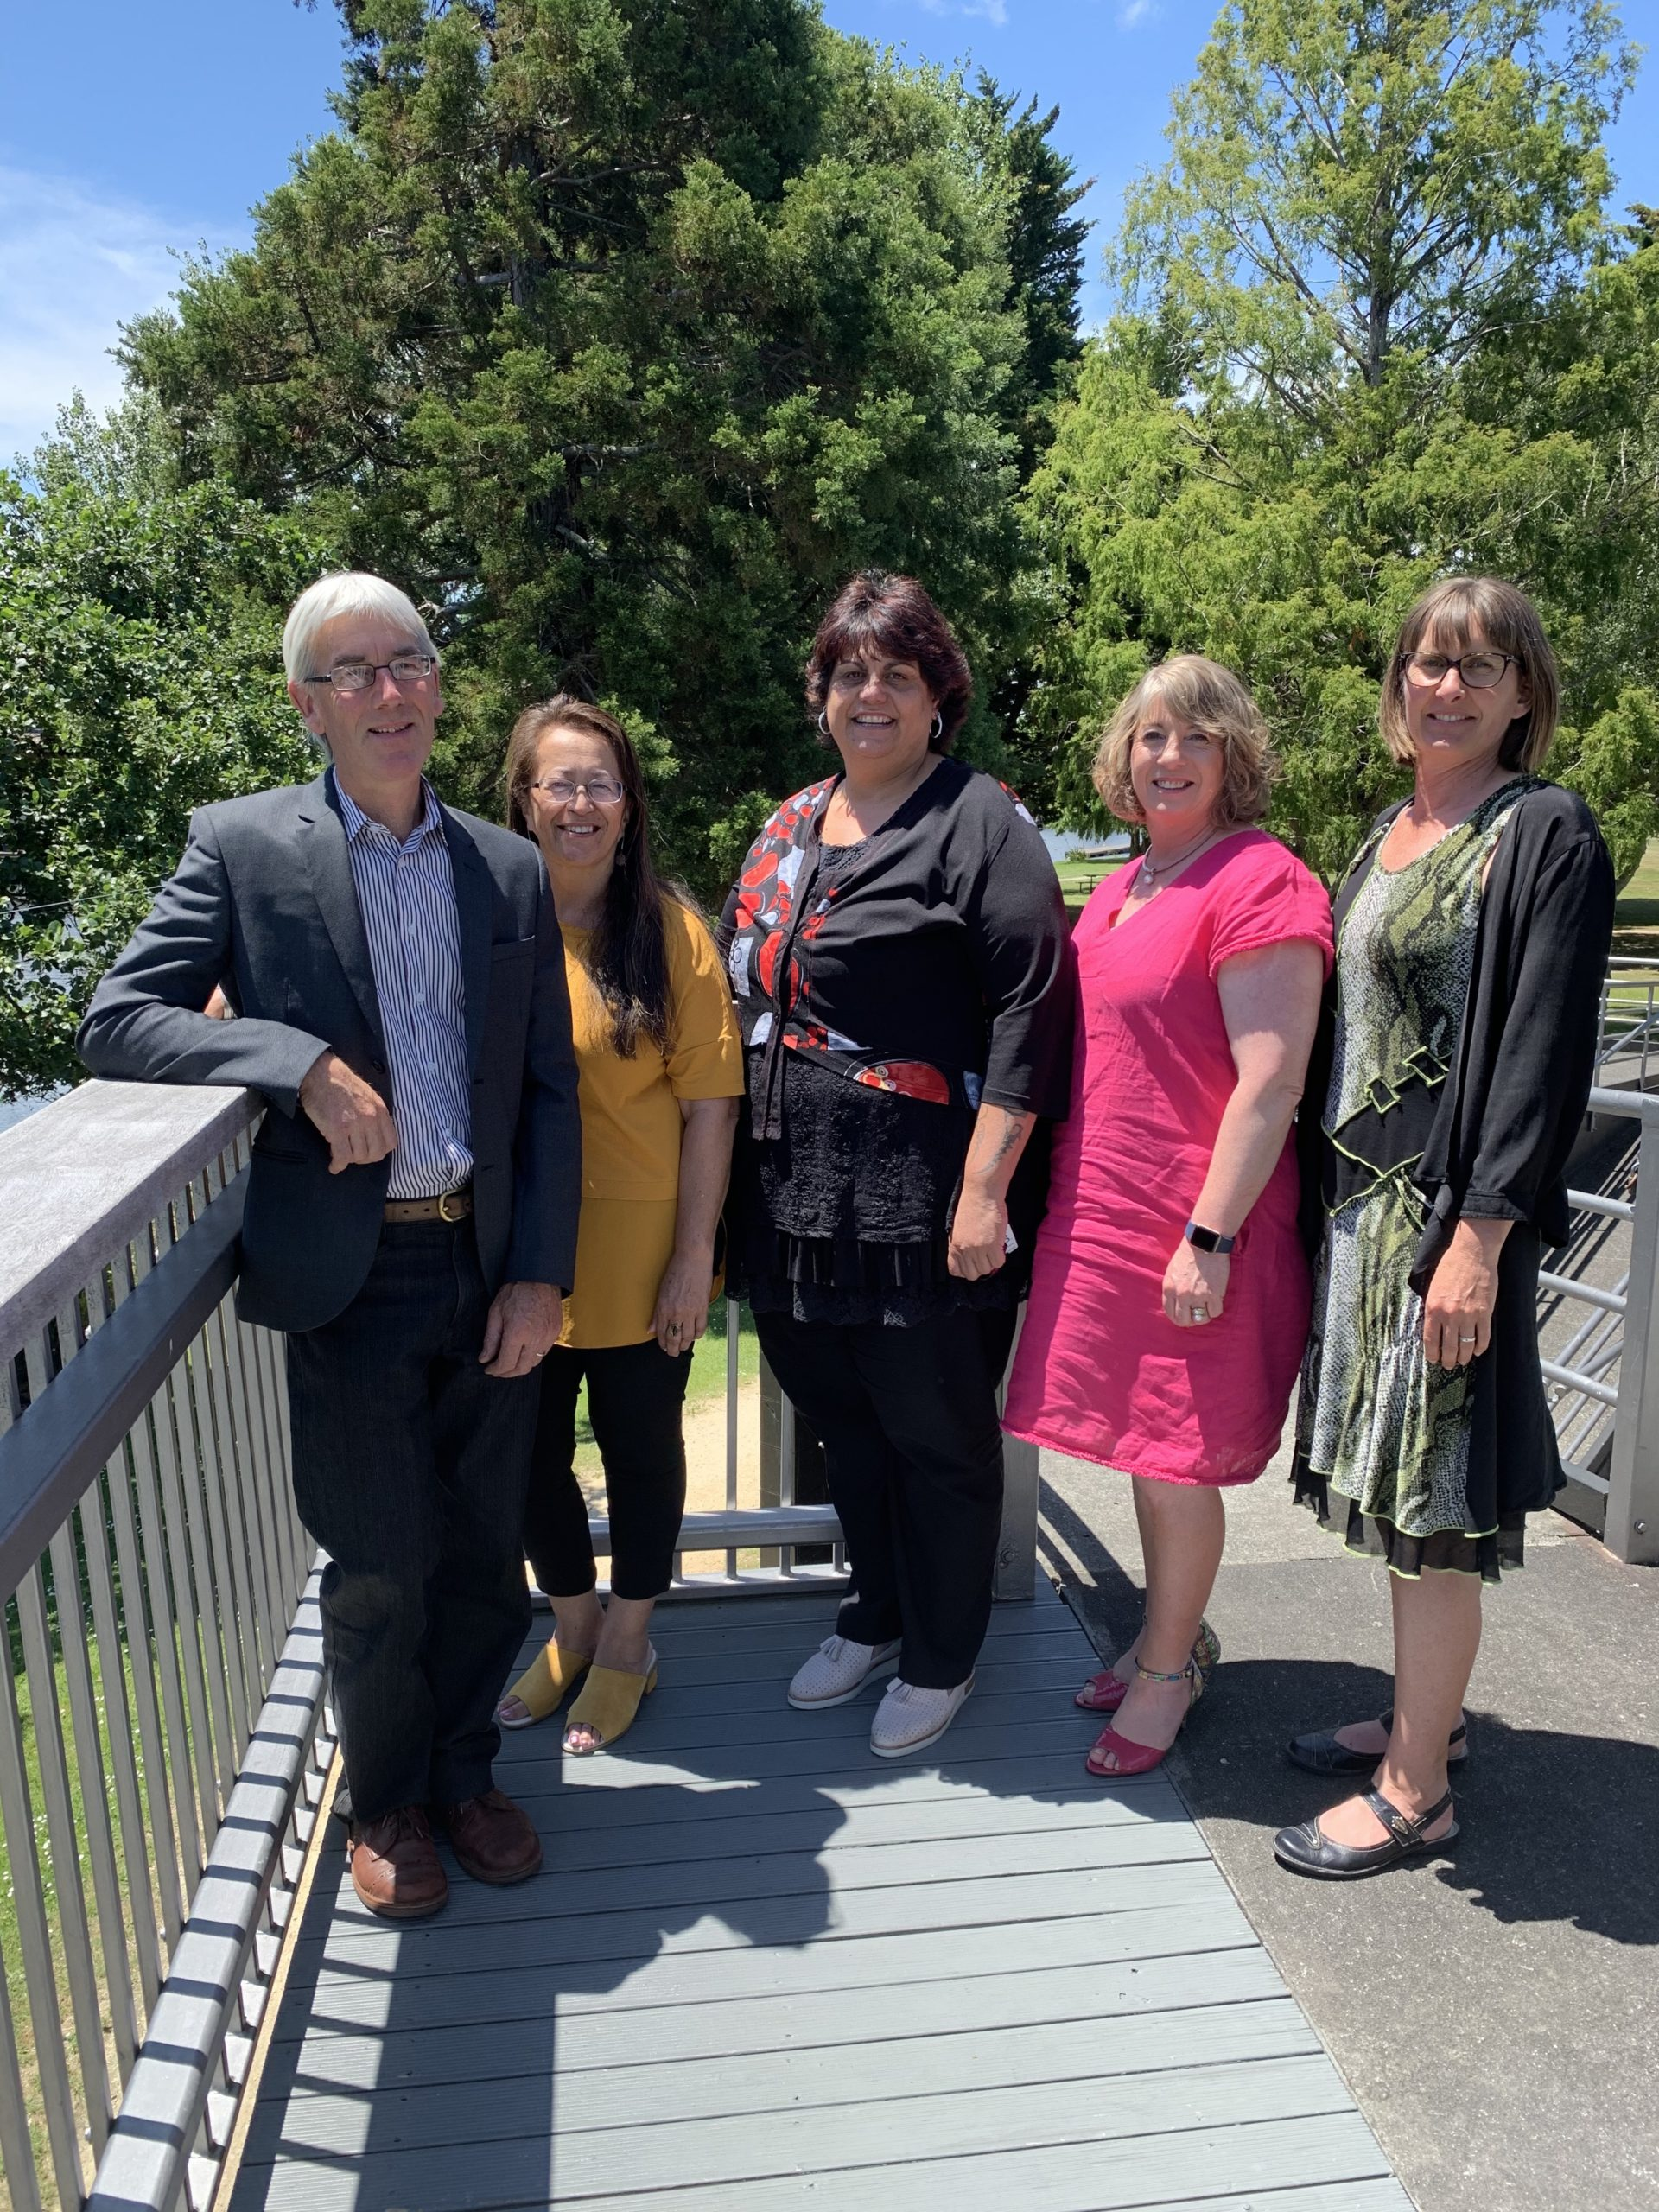 Manawatū River Leaders' Forum welcomes MidCentral District Health Board to the group.